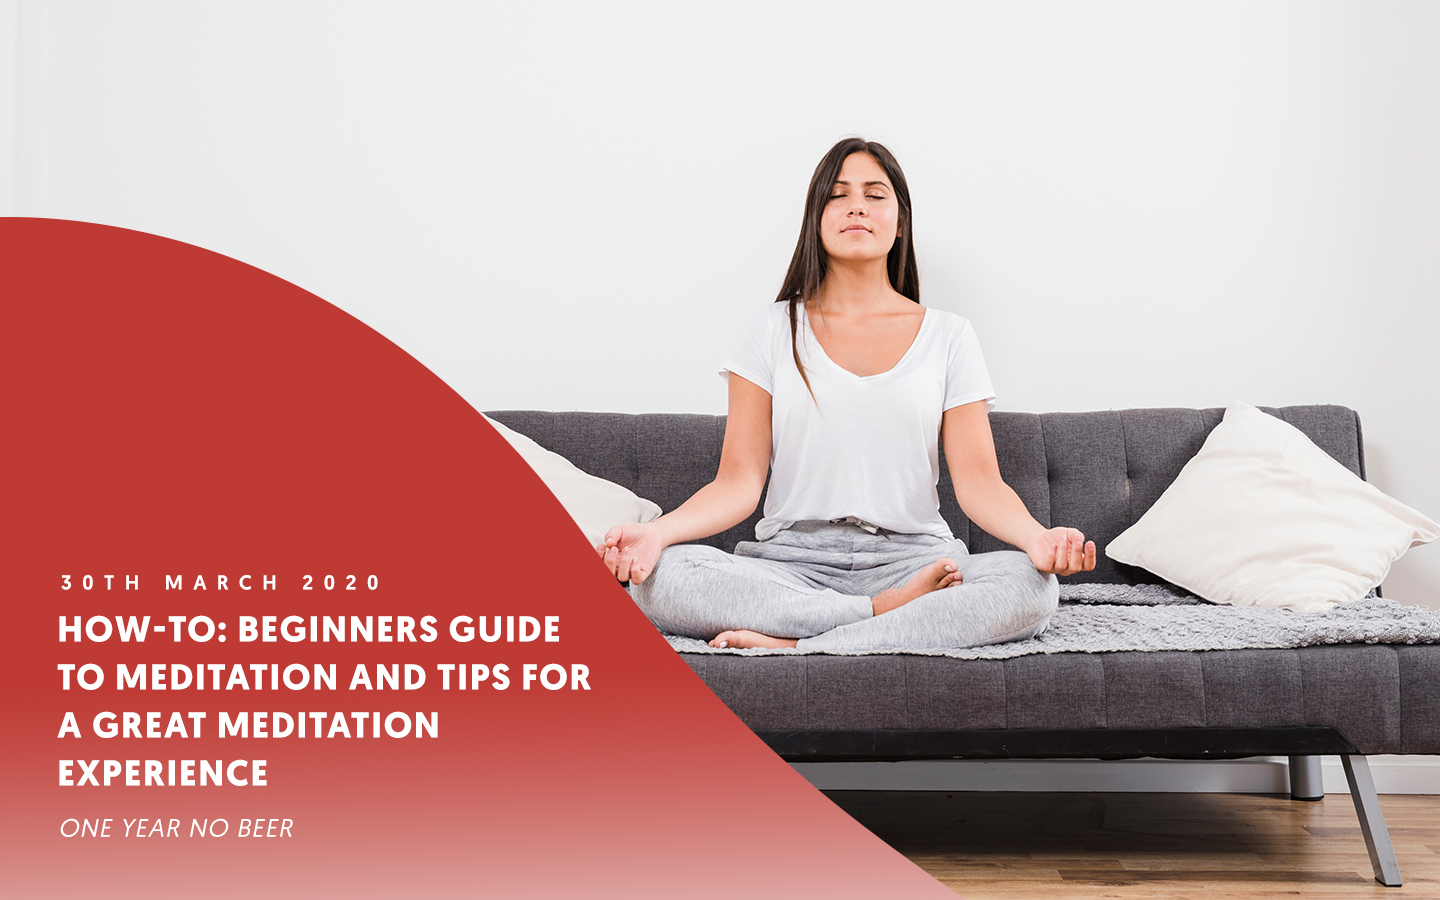 Meditation for beginners: Beginners guide to meditation and tips for a great first time experience